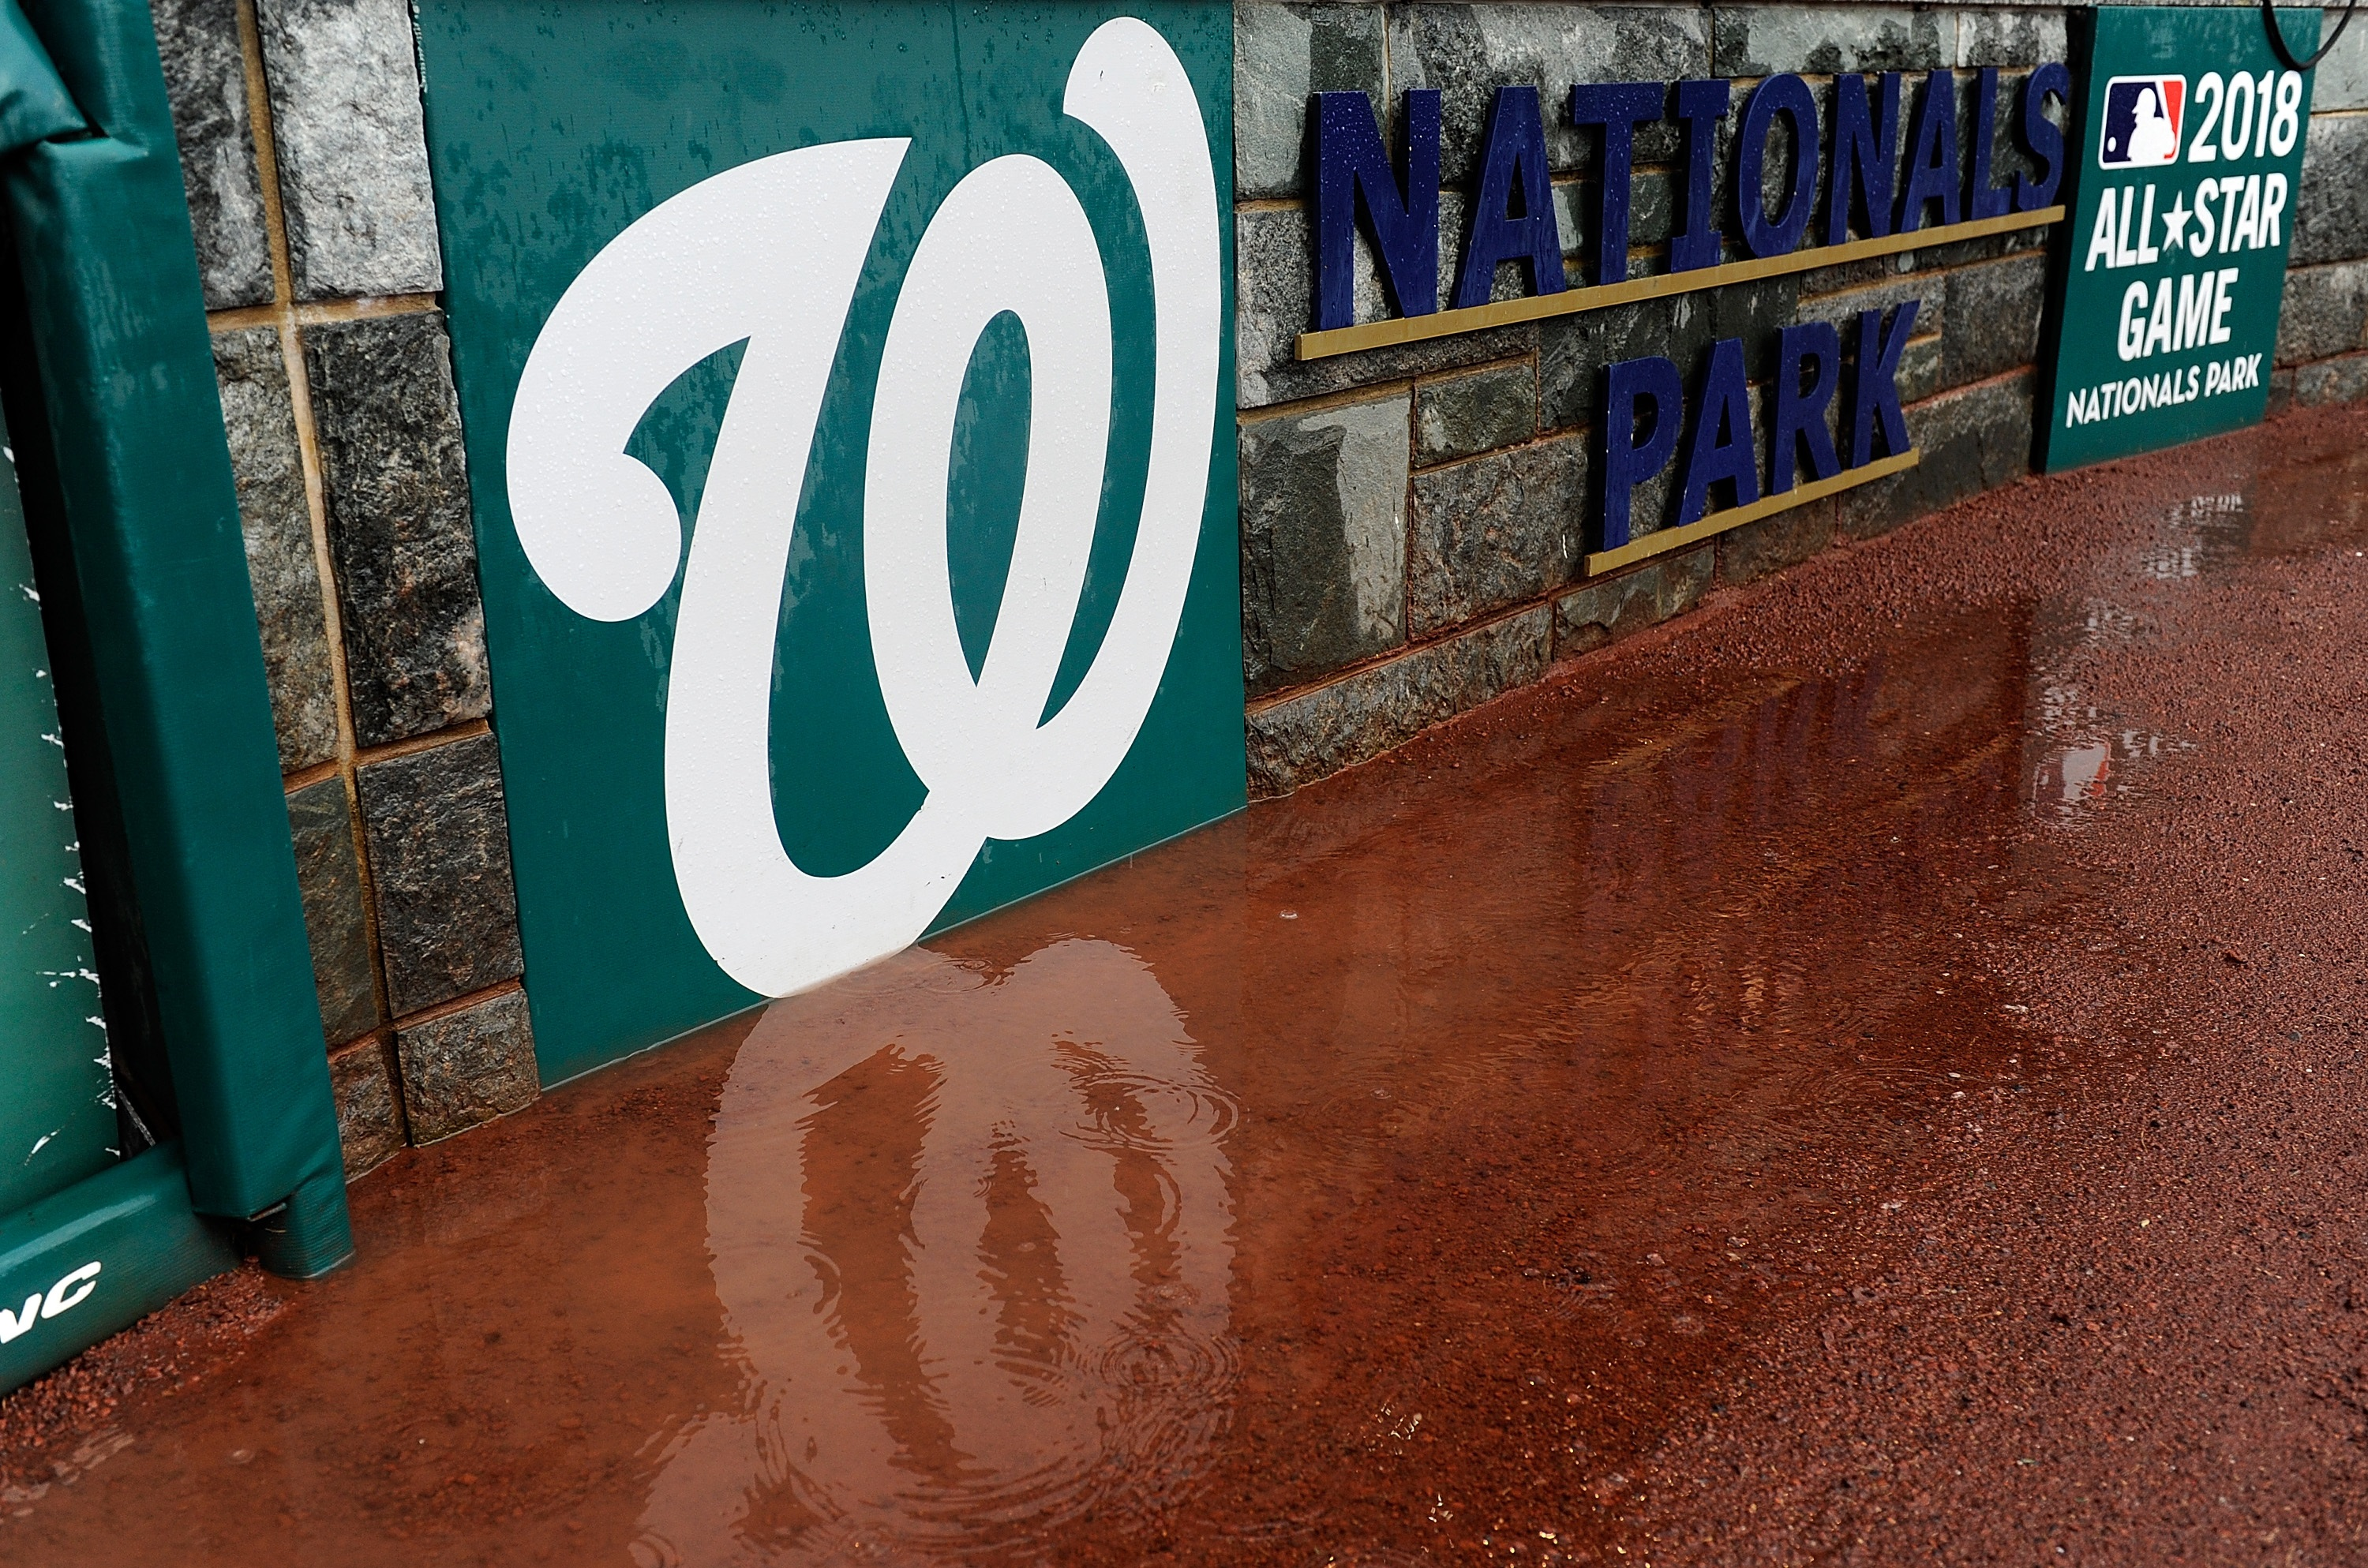 Seven naming rights sponsor suggestions for Nationals Park